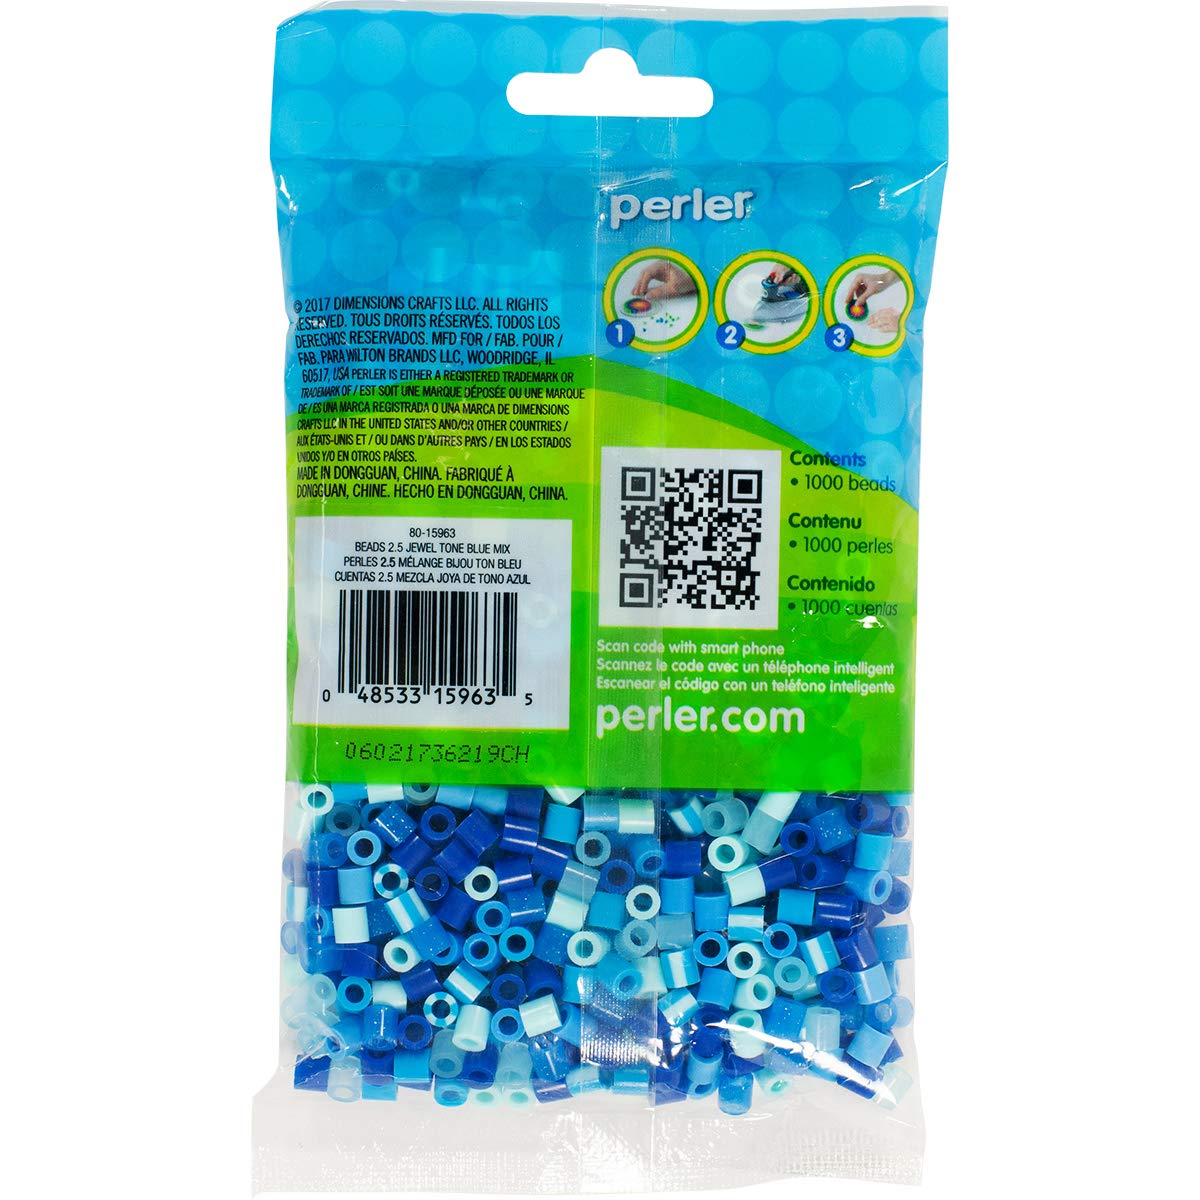 Perler 80-15968 Assorted Unicorn Color Fuse Beads Mix